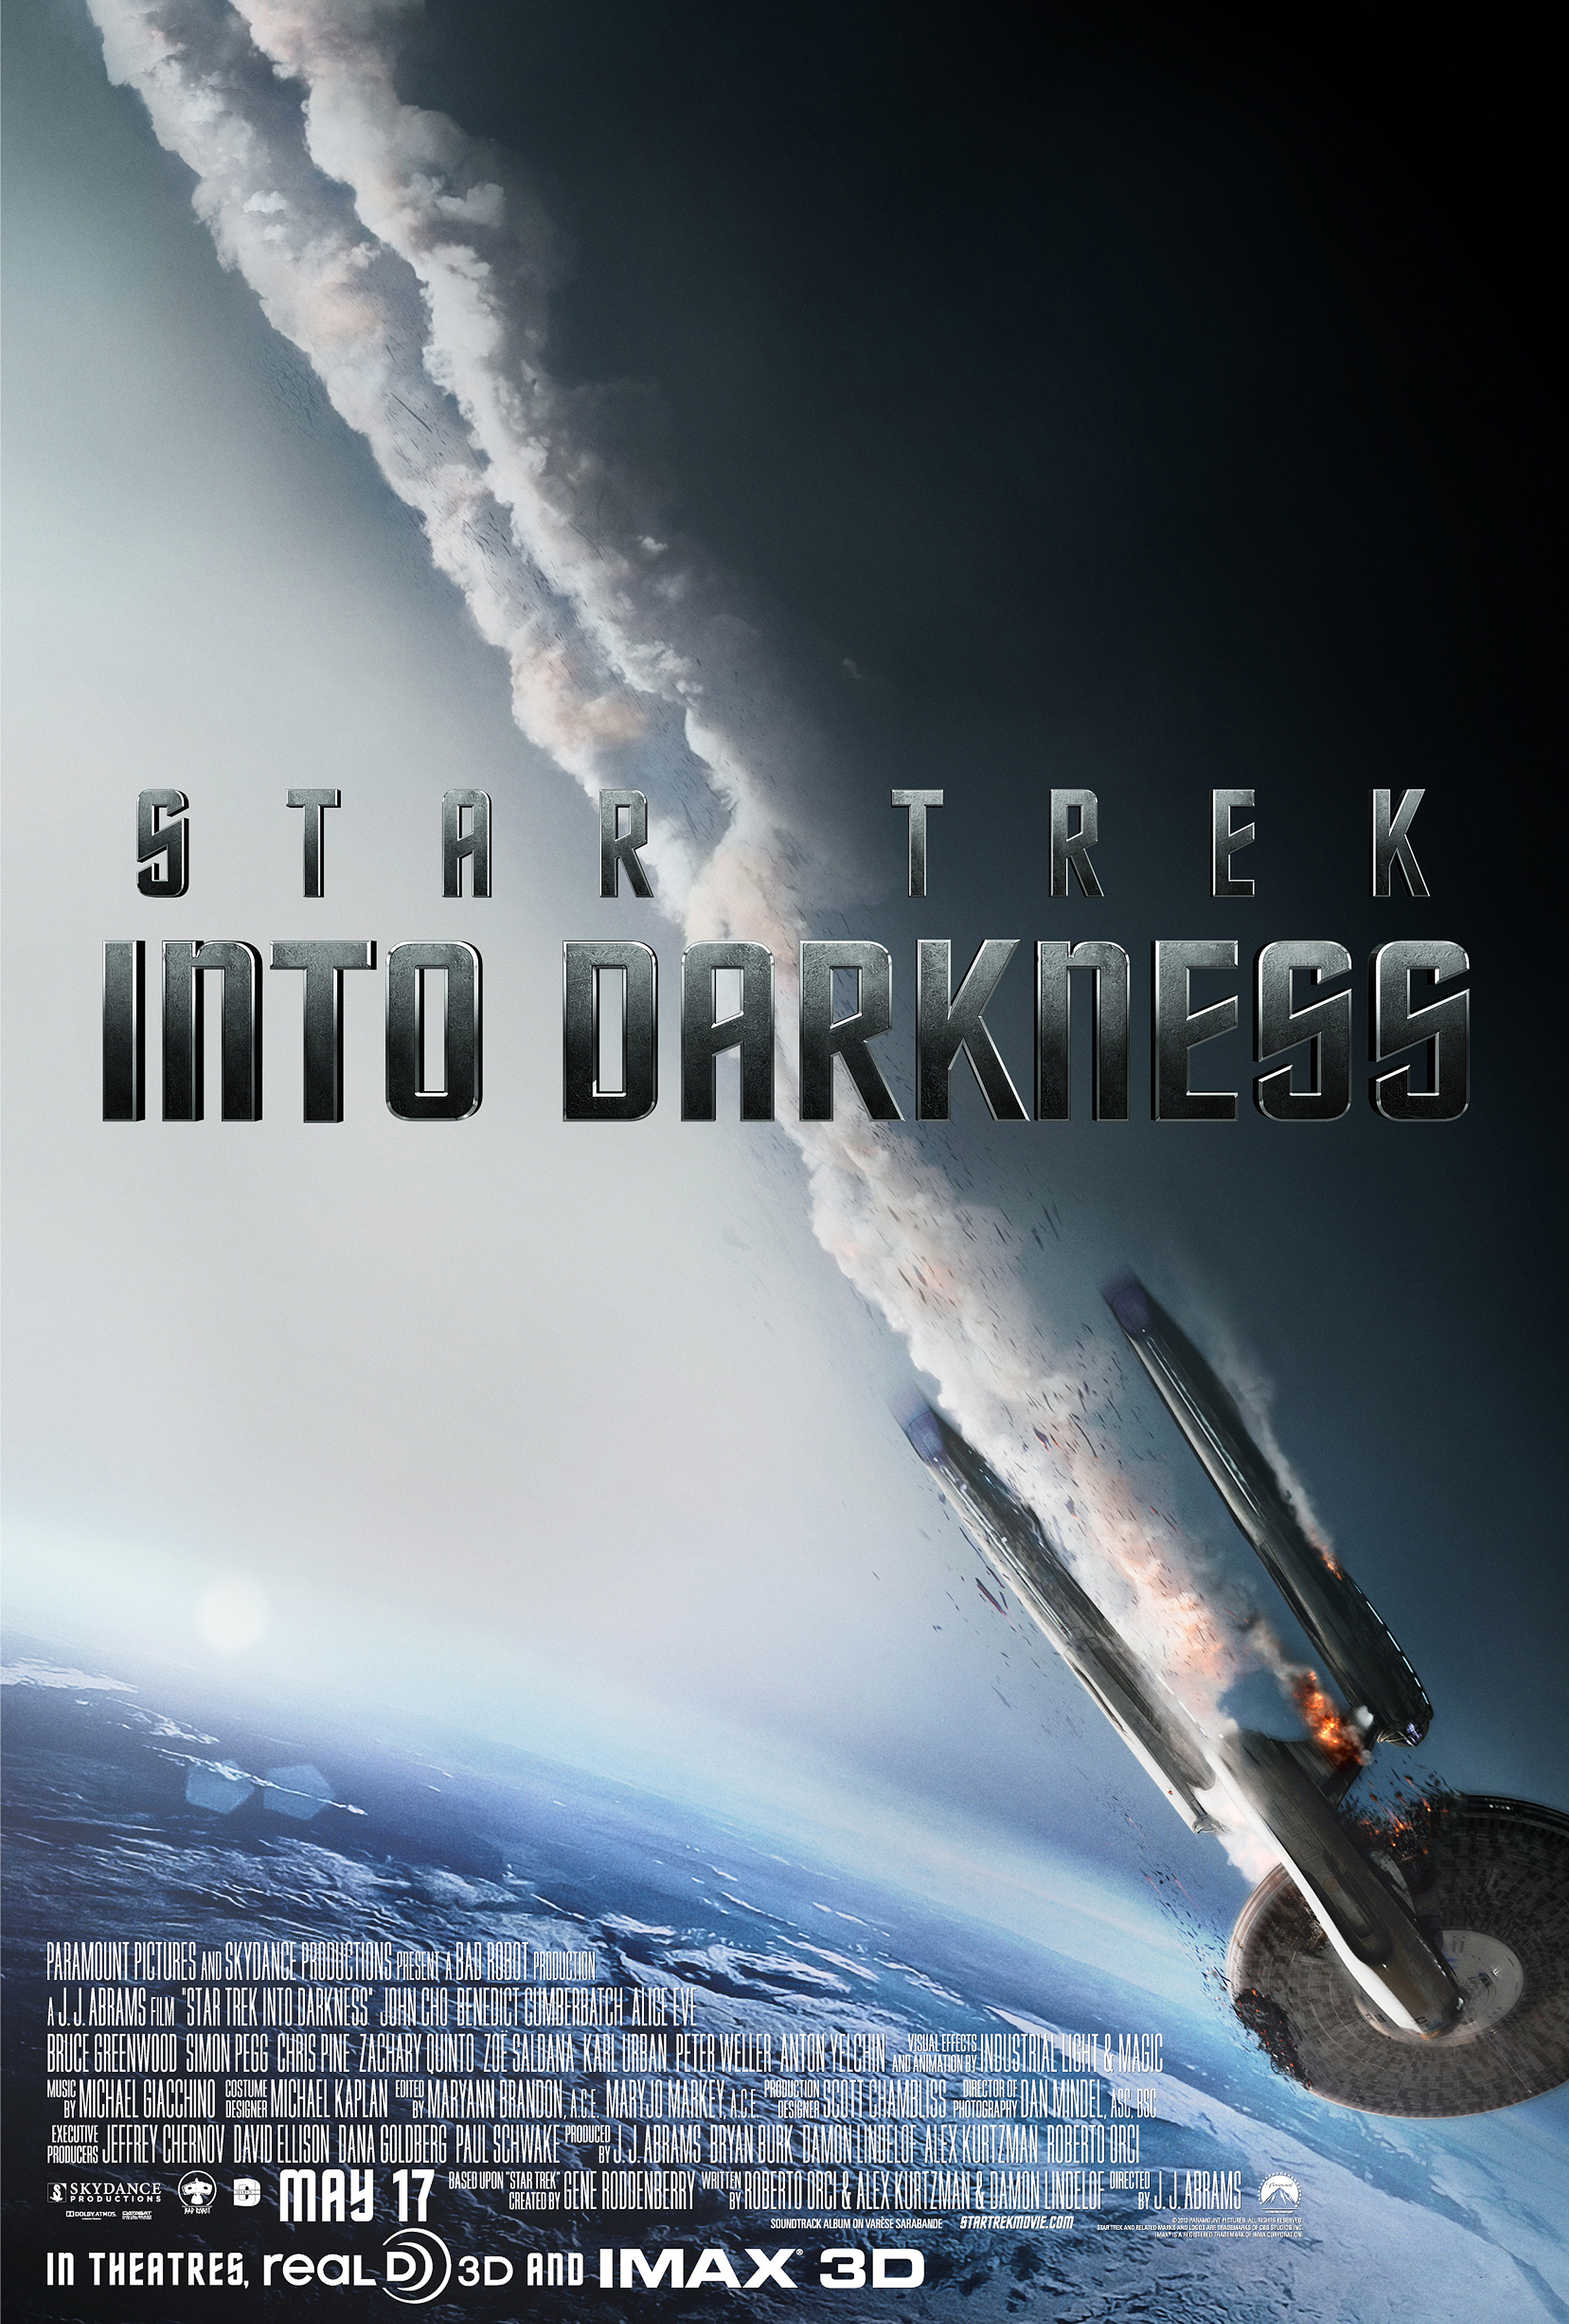 http://wac.450f.edgecastcdn.net/80450F/screencrush.com/files/2013/04/star_trek_into_darkness_poster_enterprise.jpg